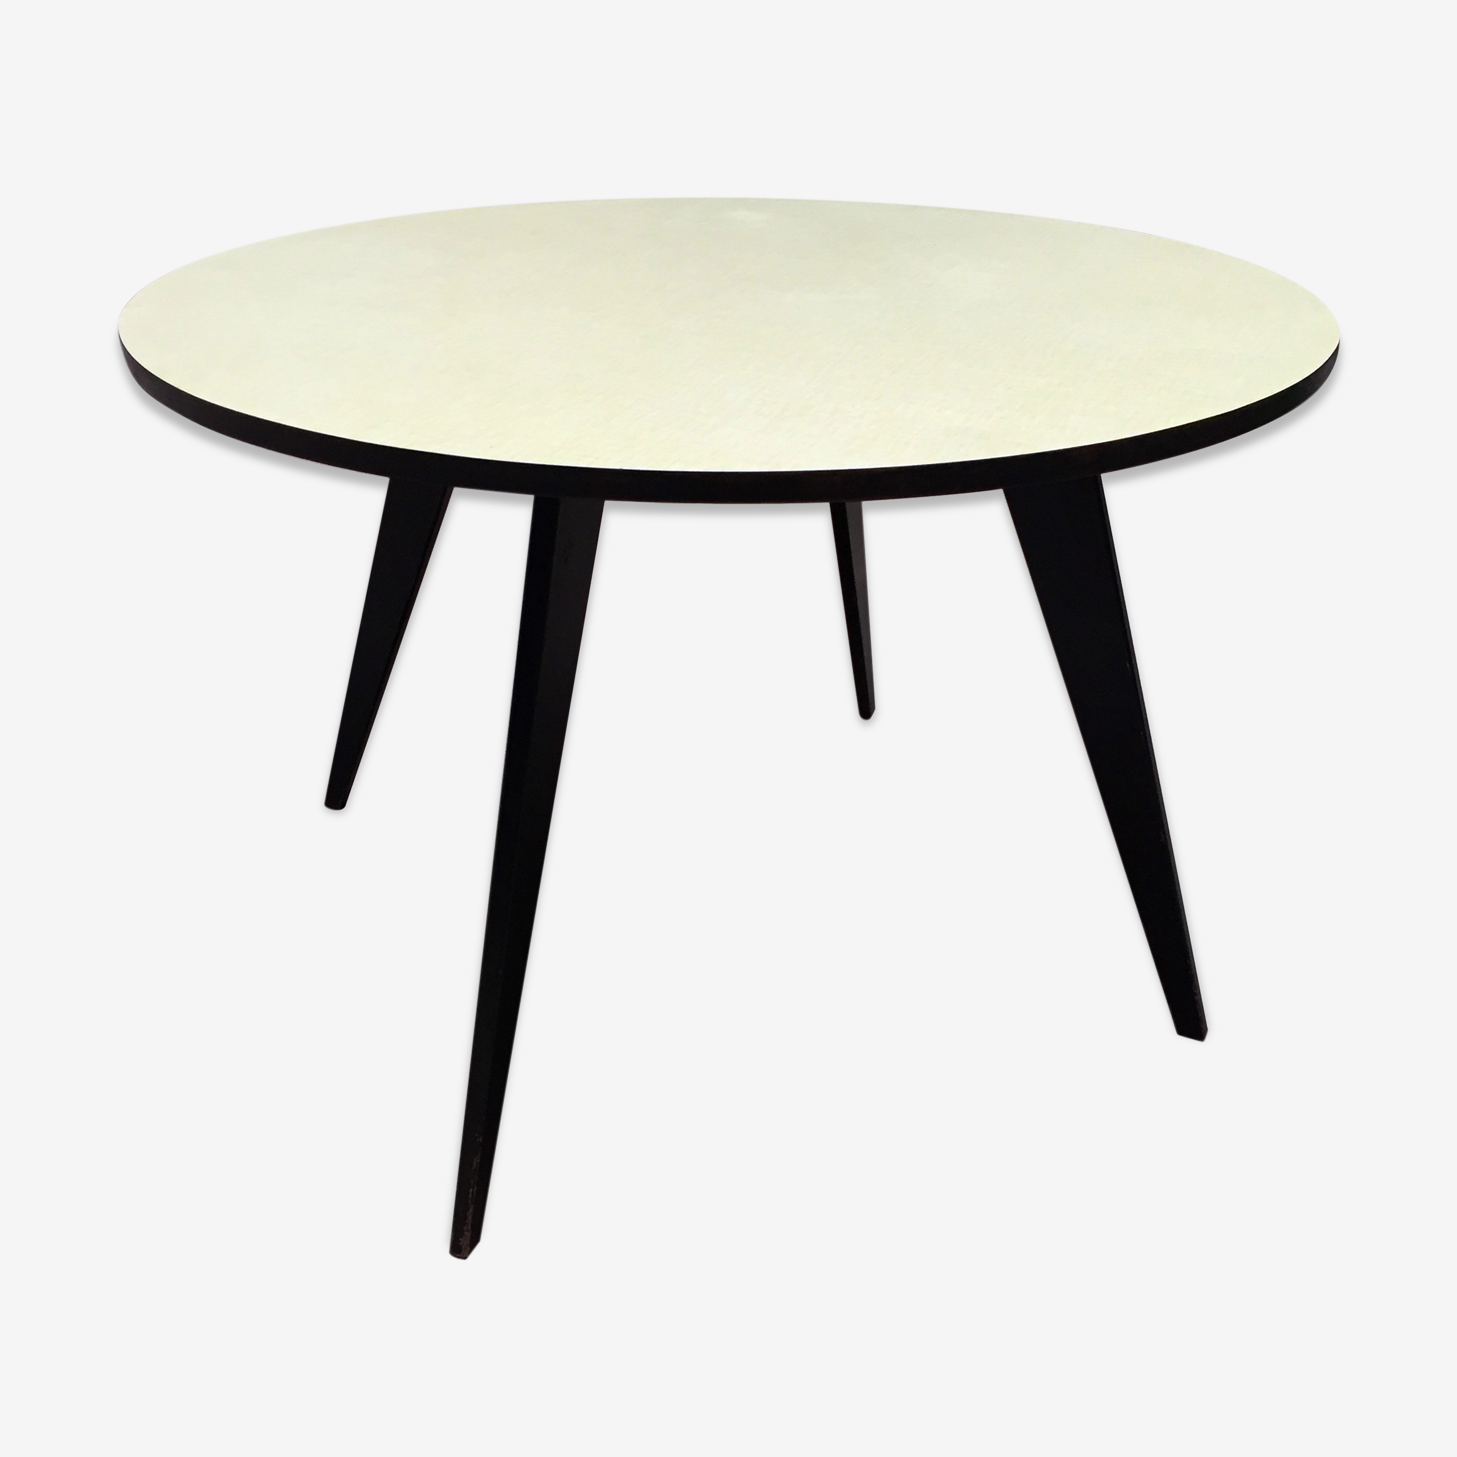 Round feet compass year 50 formica table